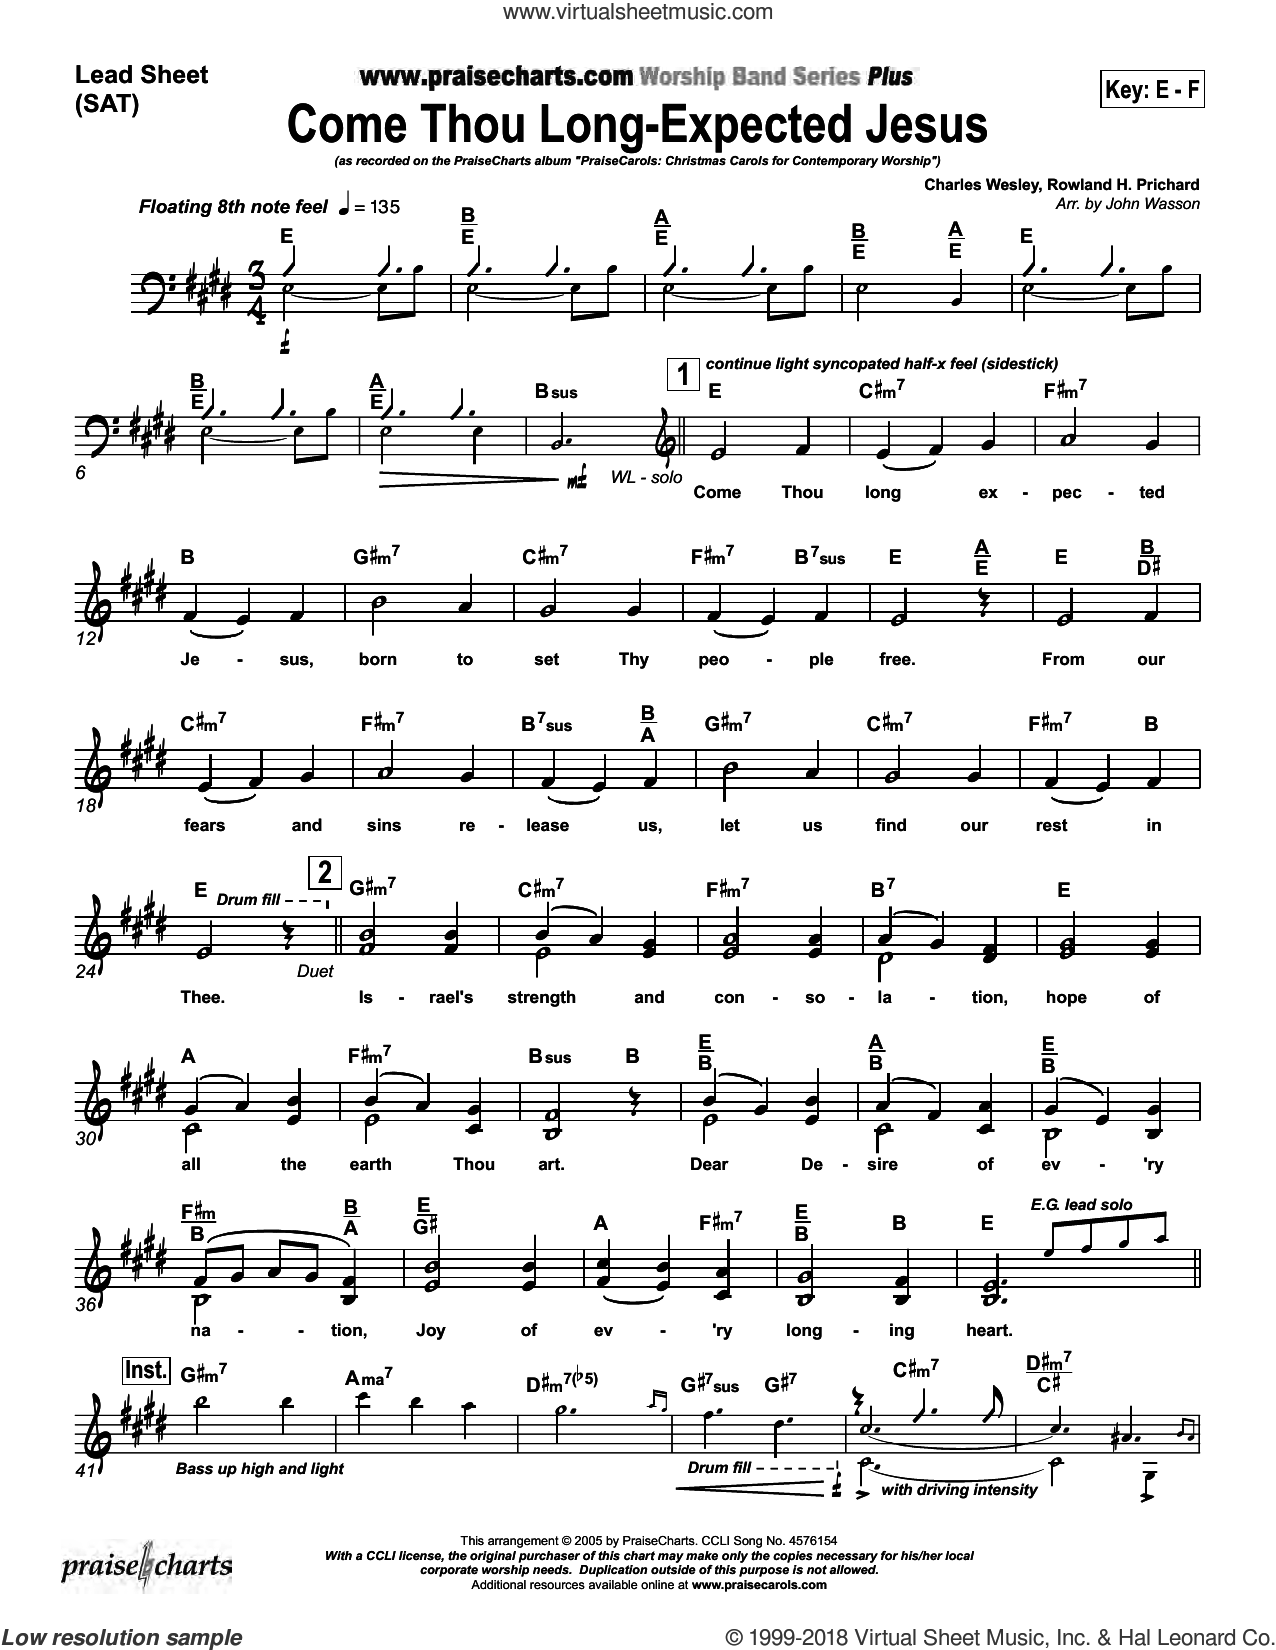 Come Thou Long Expected Jesus sheet music for concert band (orchestration) by John Wasson and Charles Wesley/Rowland Prichard, intermediate skill level